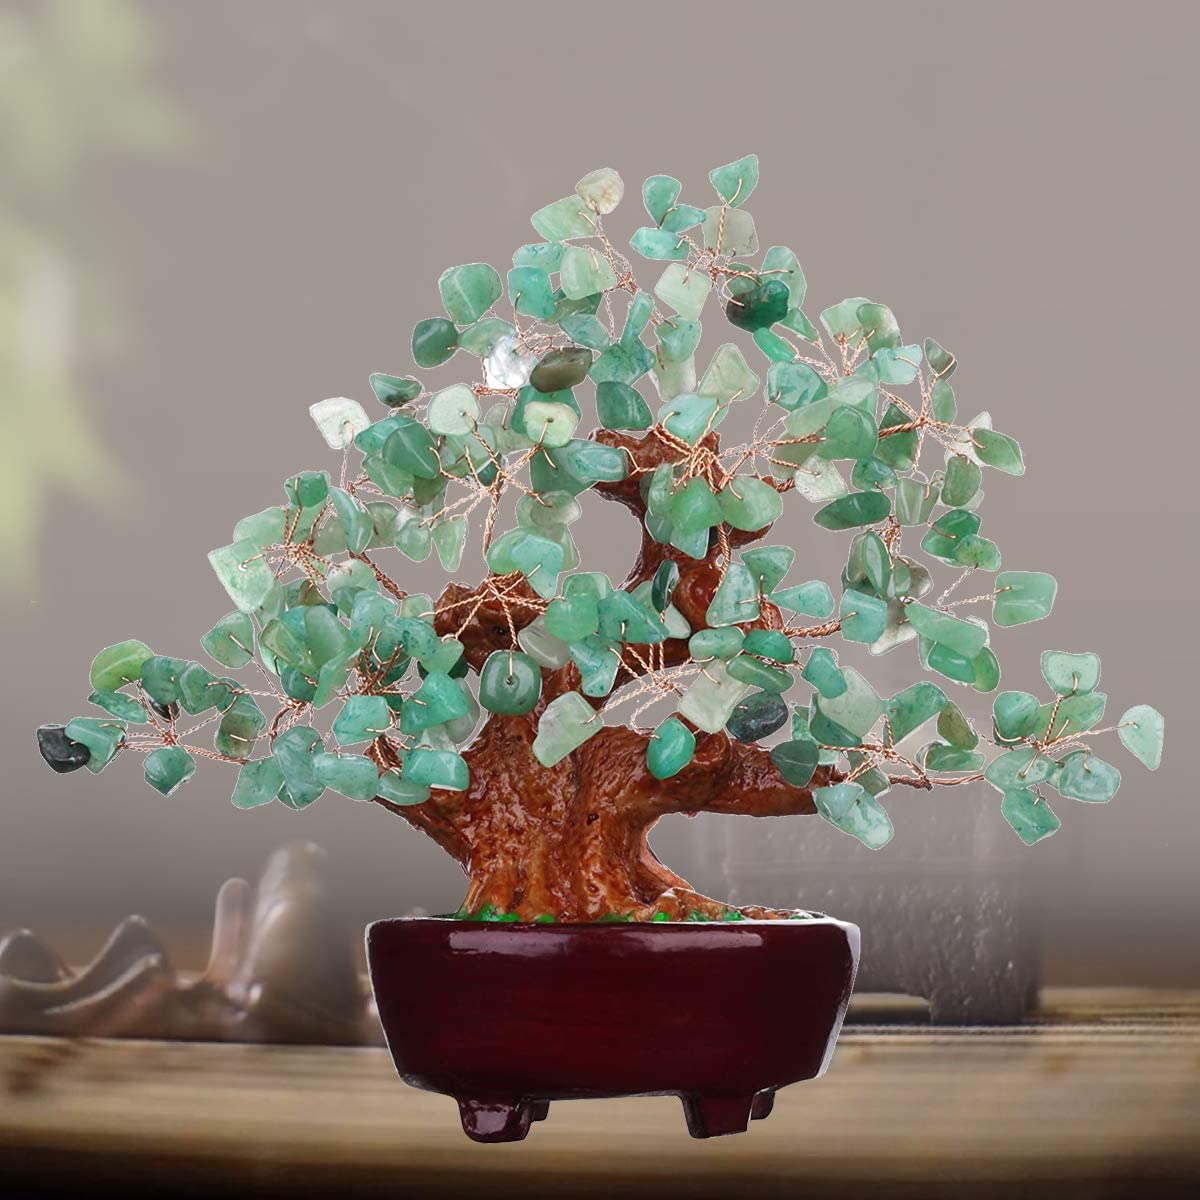 Application of green quartz stone in feng shui home & life